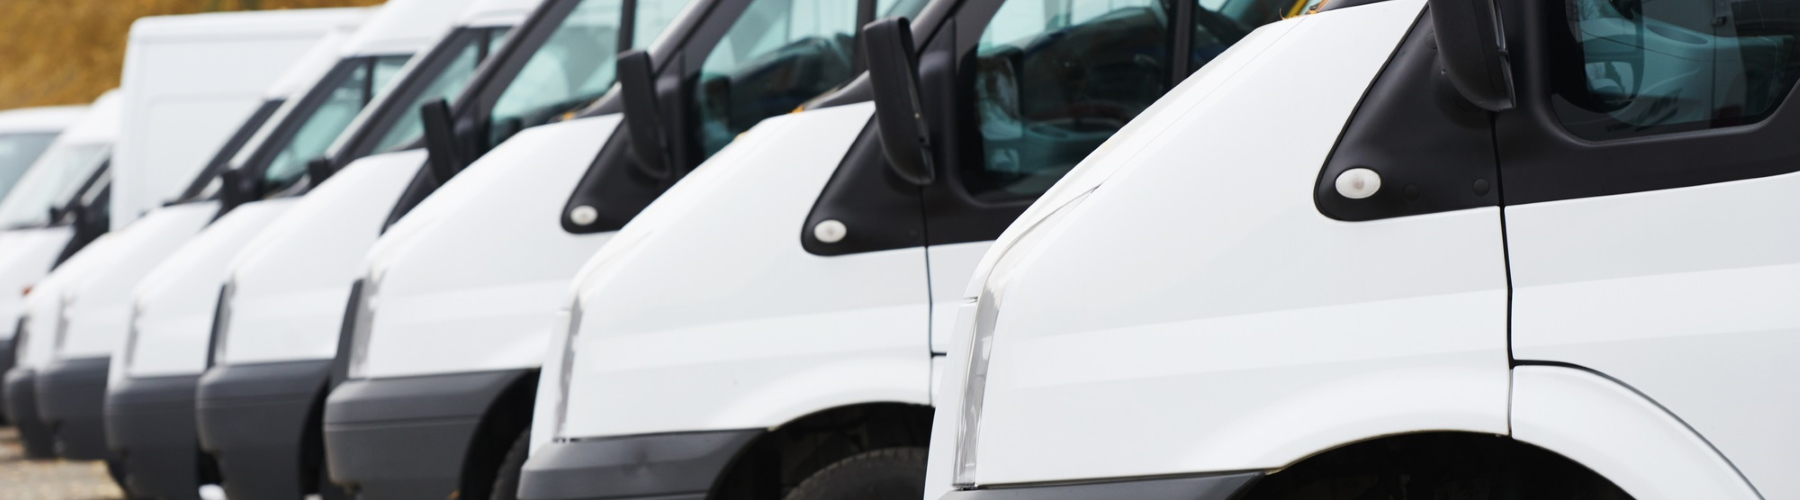 Row of commercial vans representing business insurance